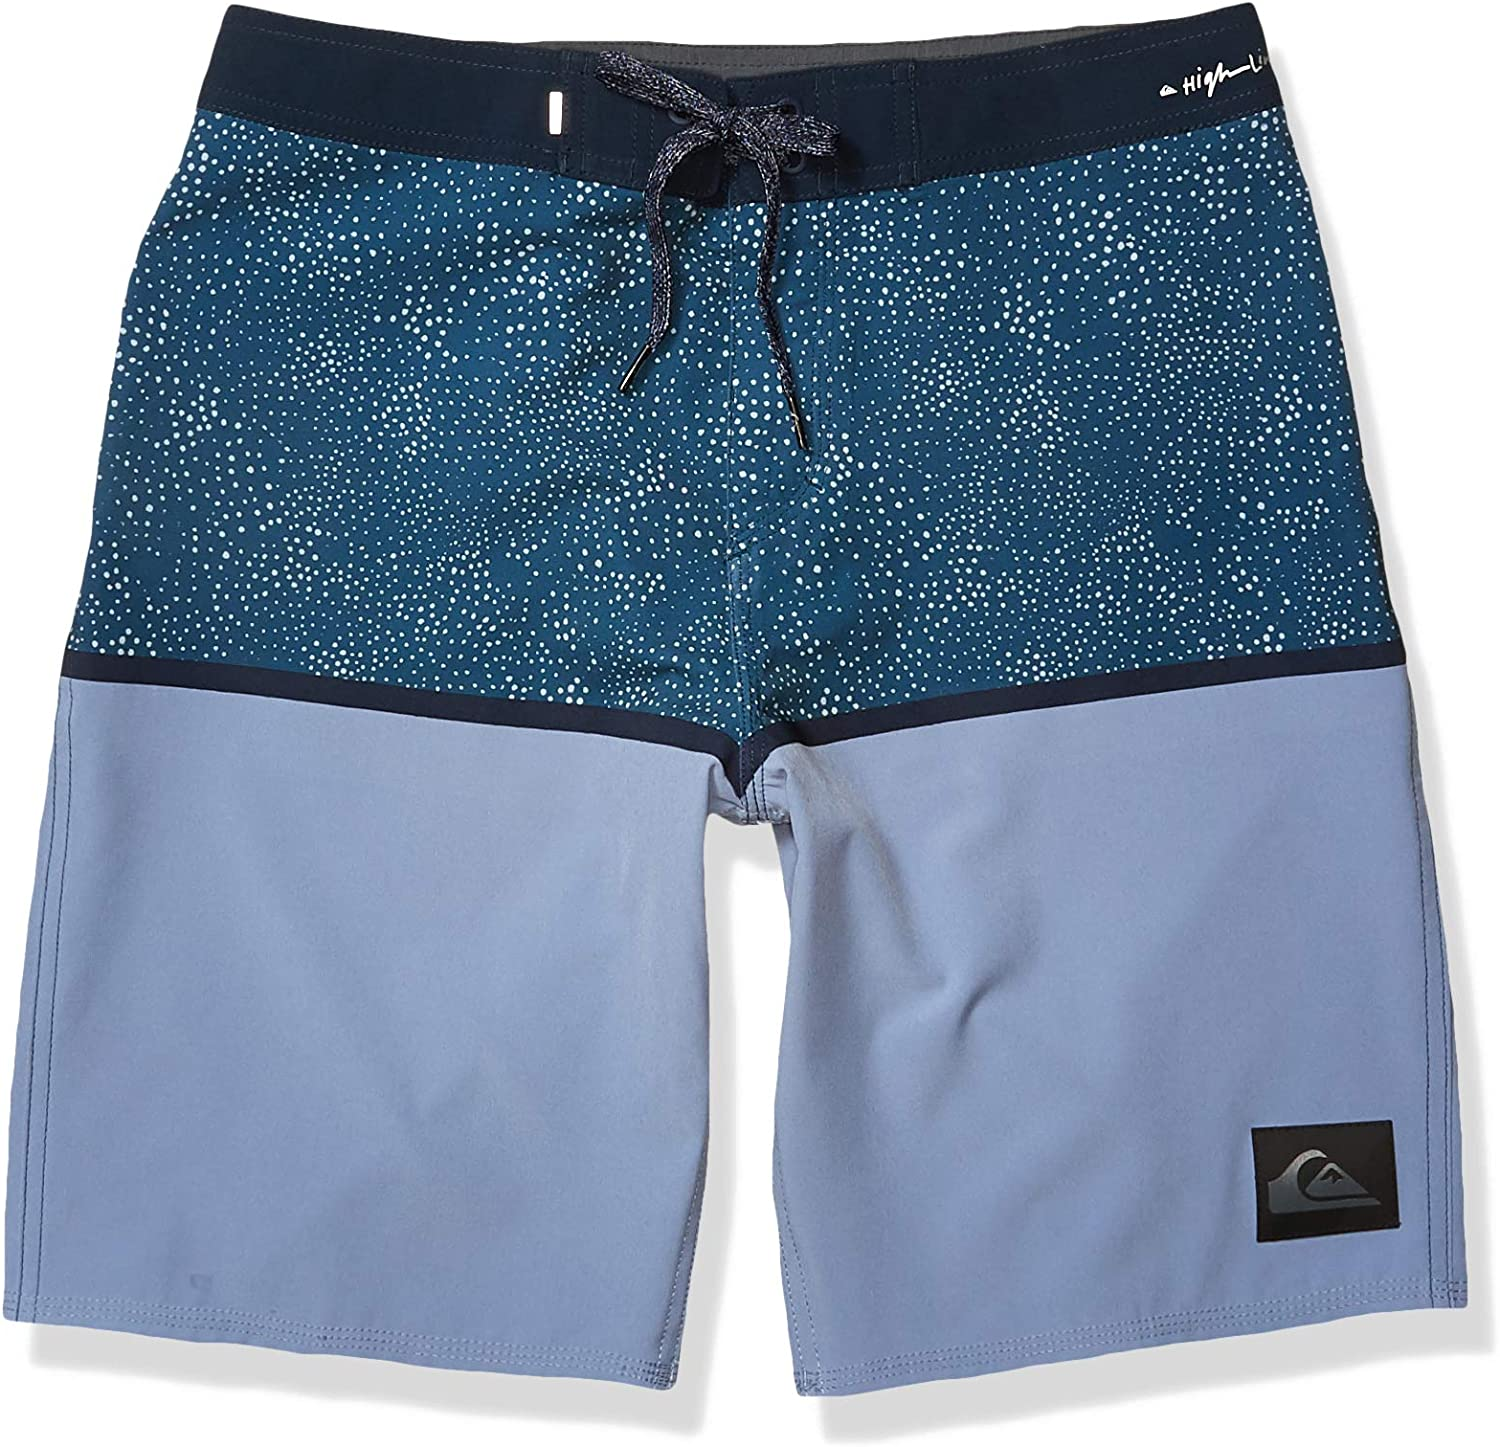 Quiksilver Mens Highline 20 Inch Outseam Stretch Boardshort Swim Trunk